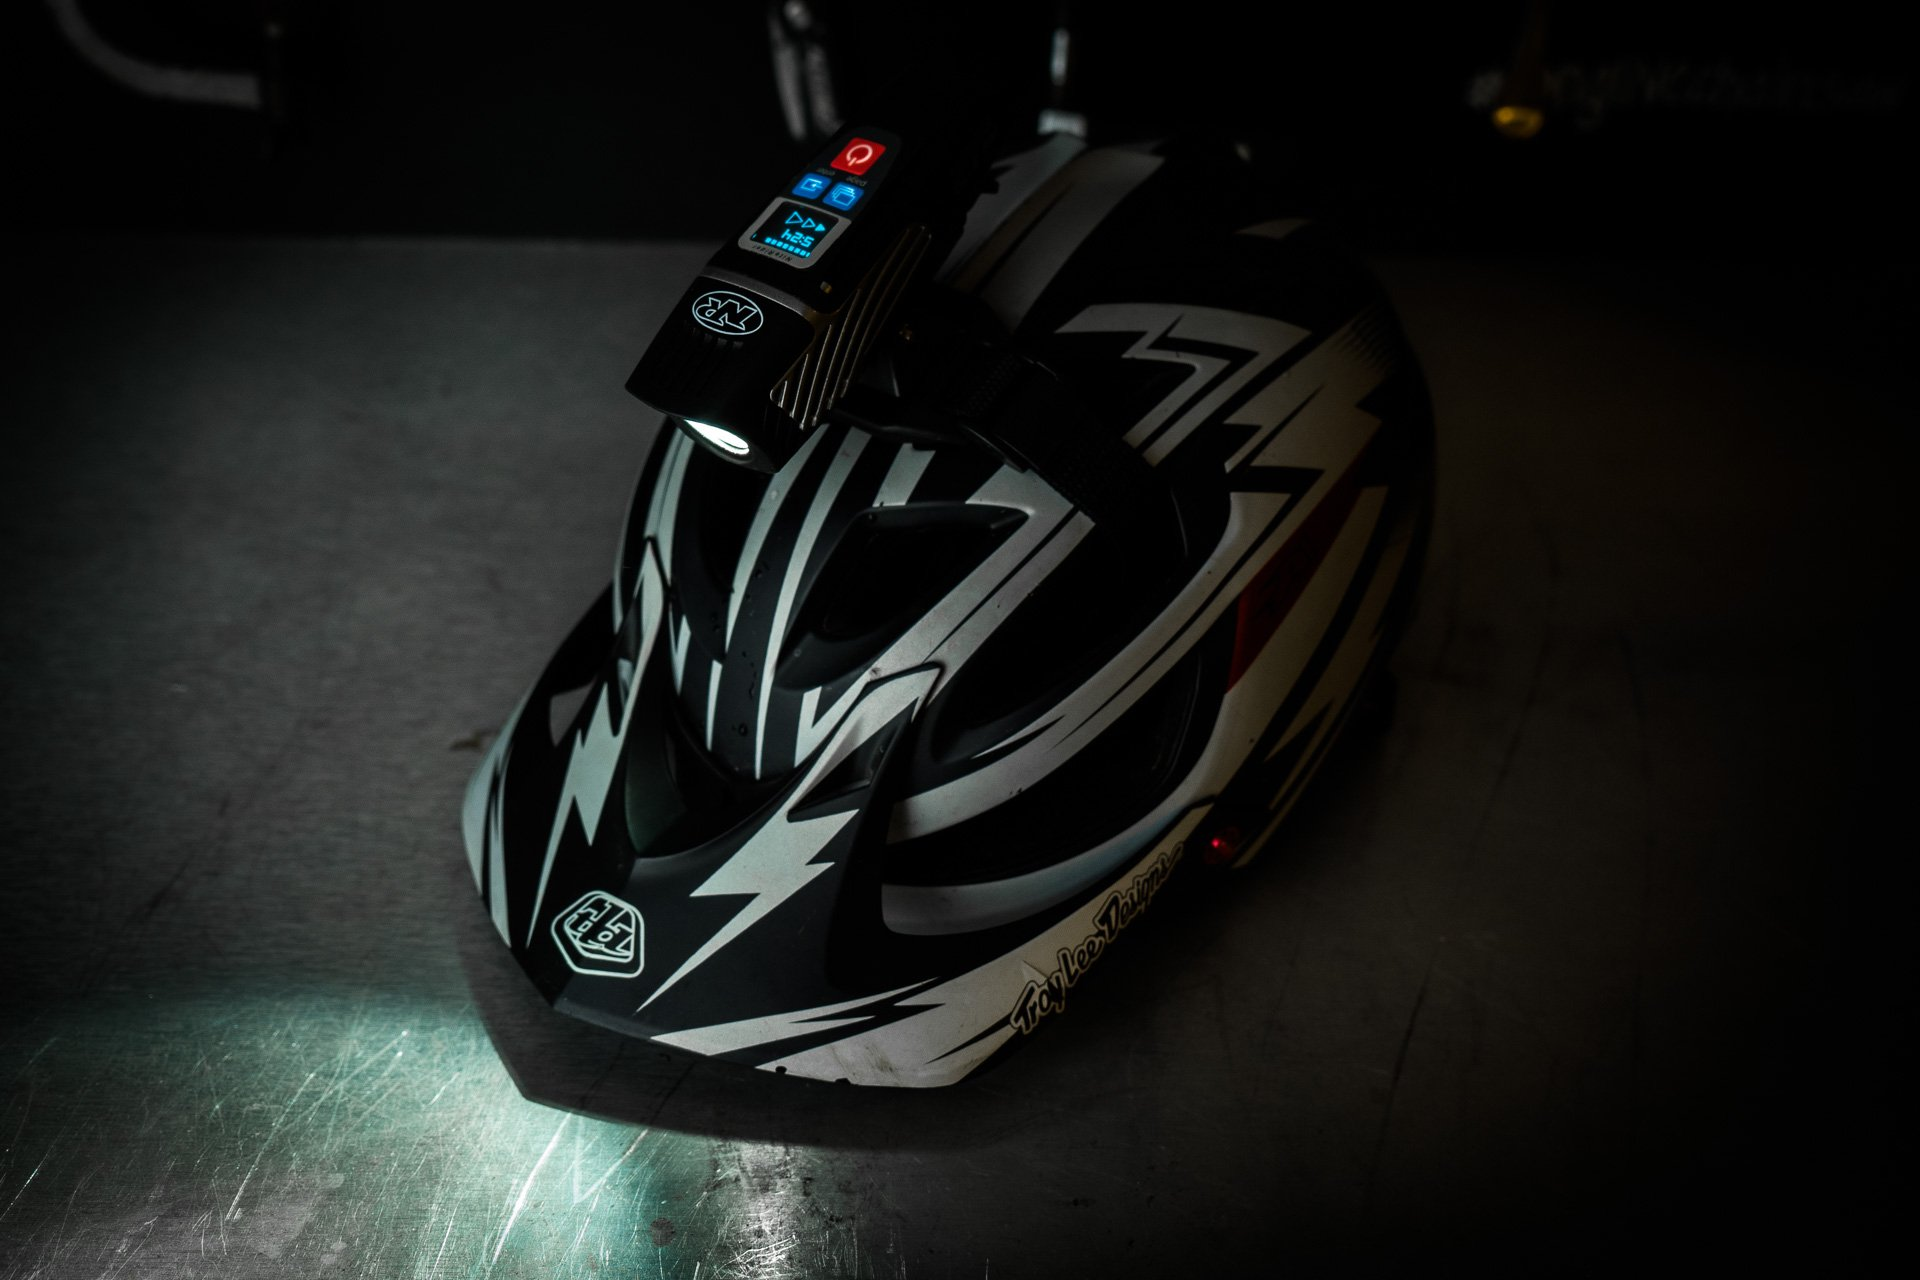 niterider lumina 1100 oled review